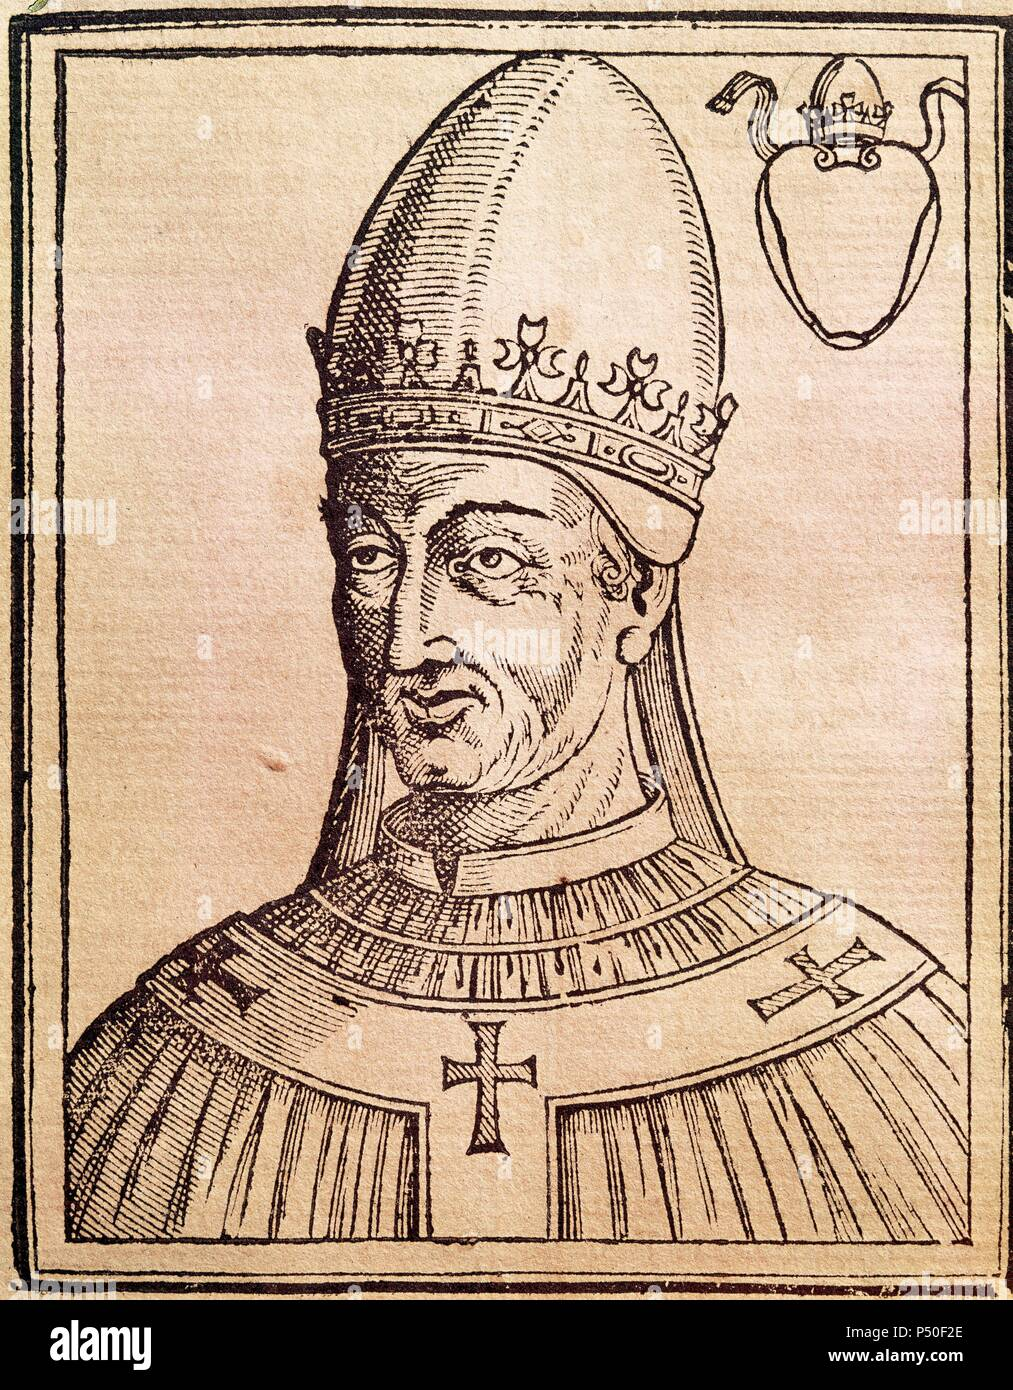 Pope Vigilius (c. 500-555). Roman pope (537-555), elected in 536. Portrait. Engraving. National Library. Rome. Italy. - Stock Image